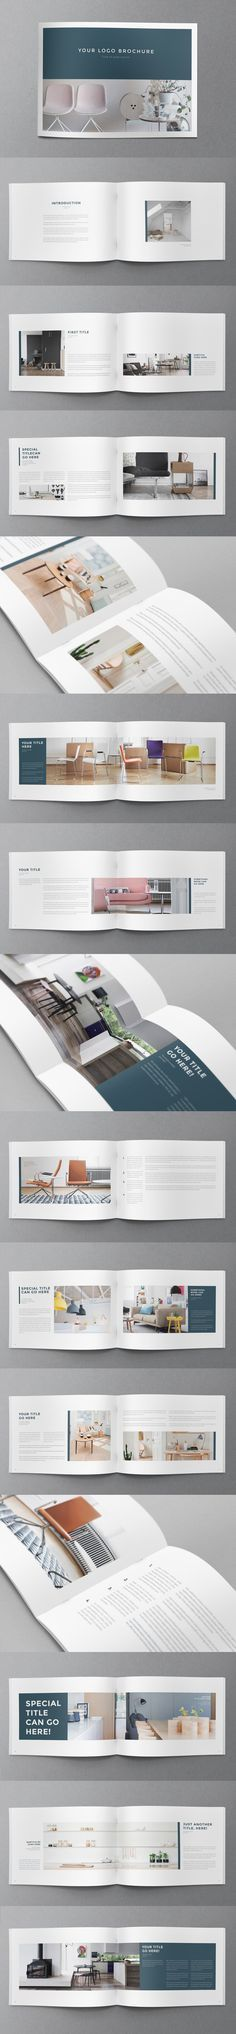 Interior Design Minimal Brochure Brochures, Layouts and - resume for interior designer